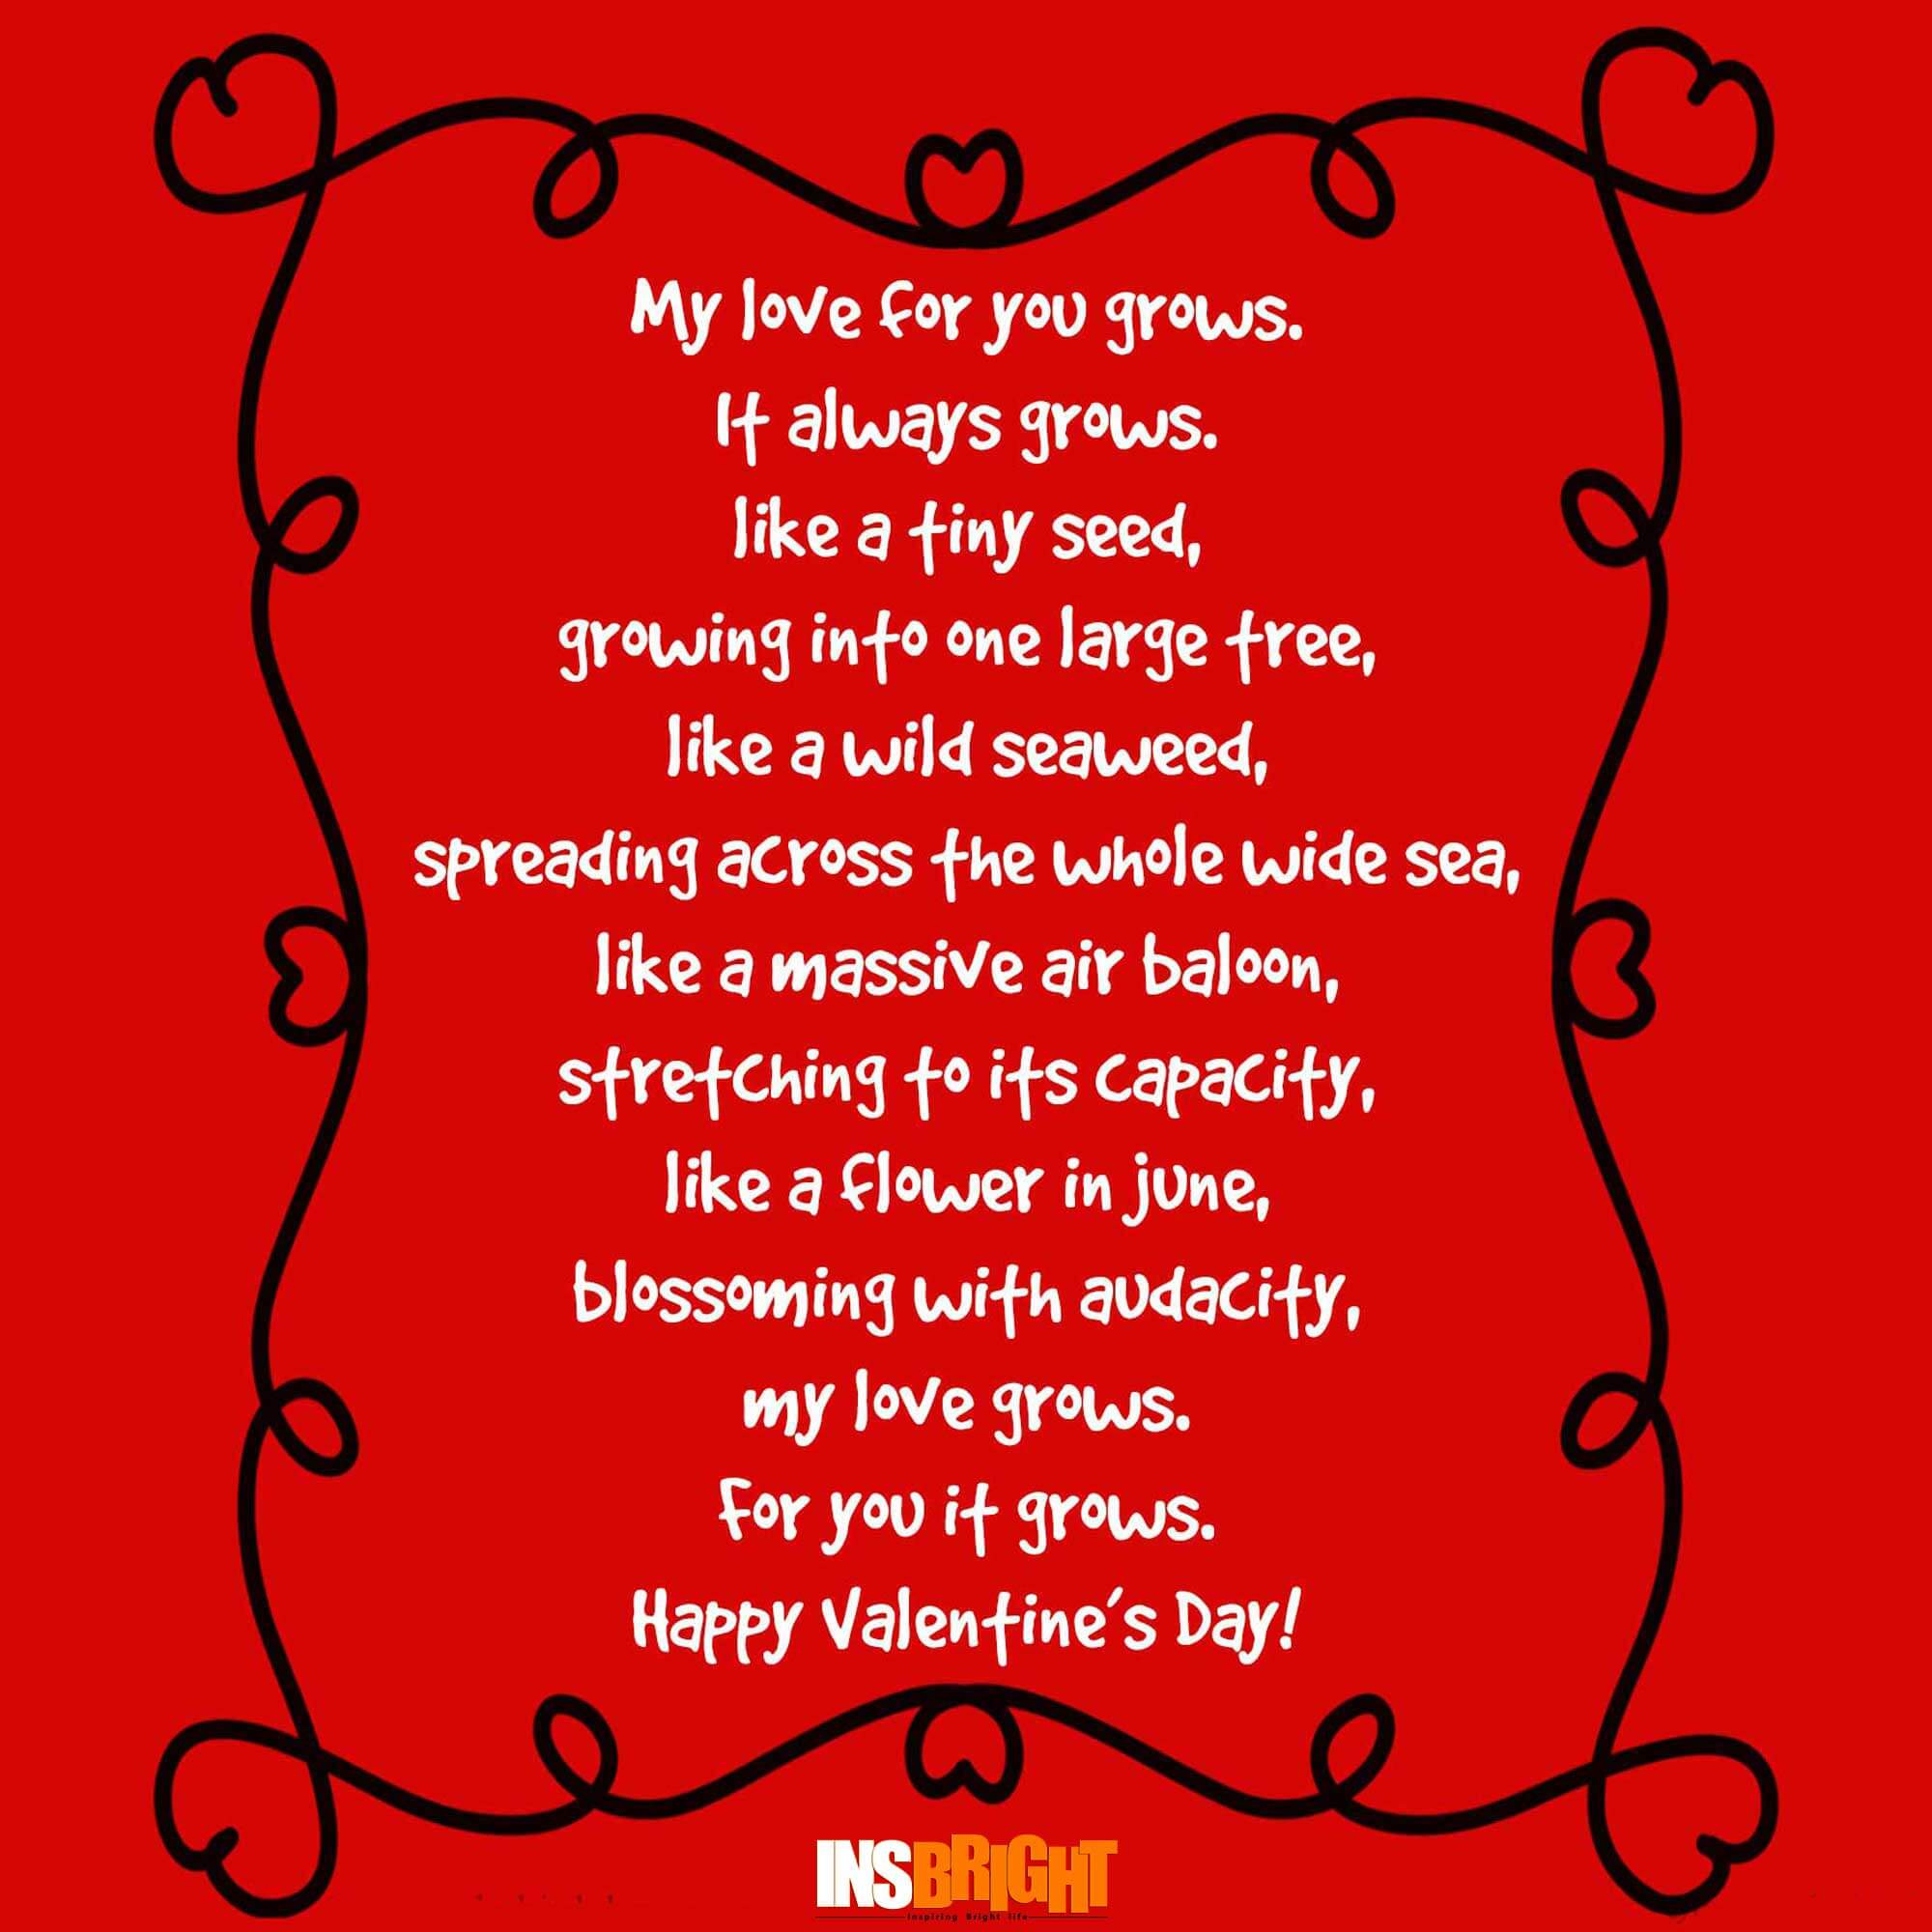 Happy Valentine S Day Poems For Him Or Her With Images 2017 Insbright